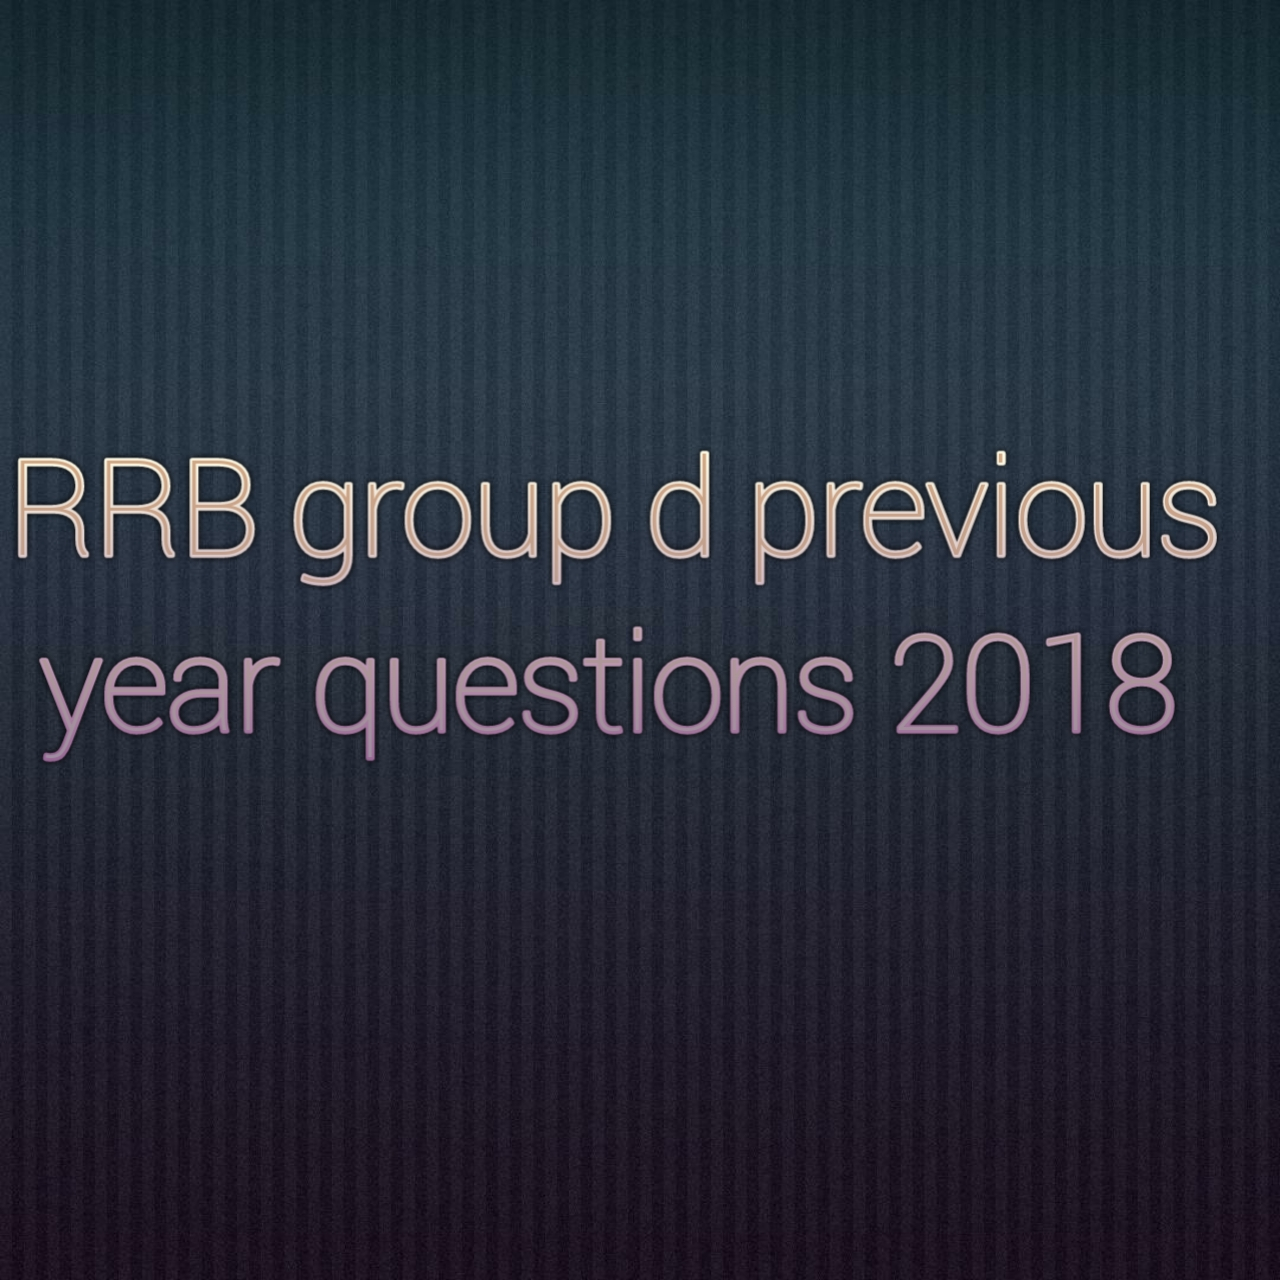 RRB group d previous year question 2018